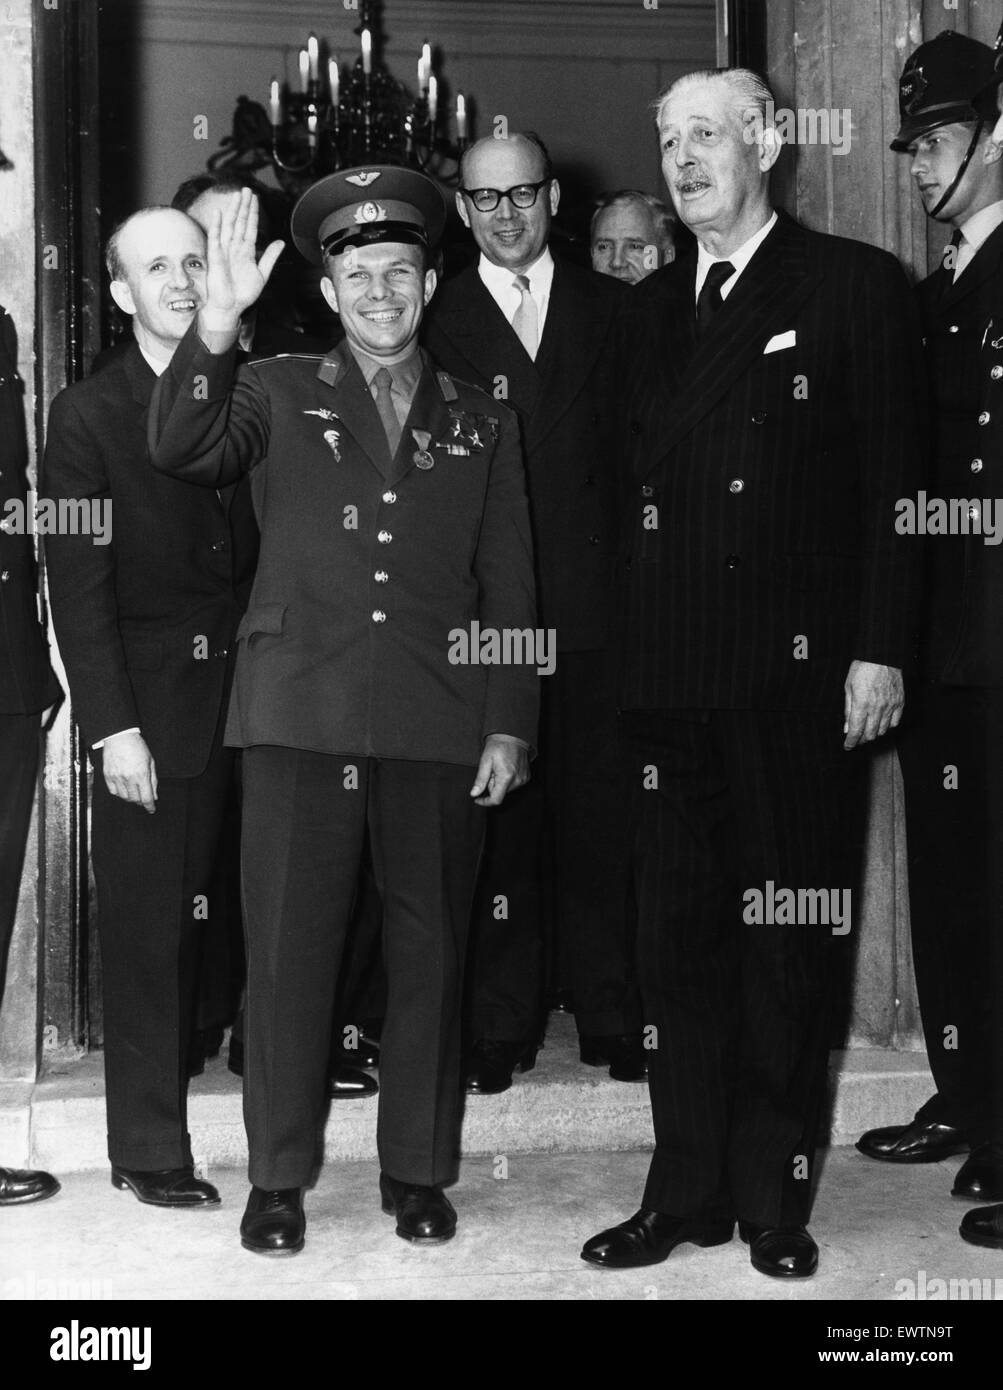 Yuri Gagarin seen here with Prime Minister Harold Macmillan at Admiralty House. The Russian astronaut waves to the - Stock Image